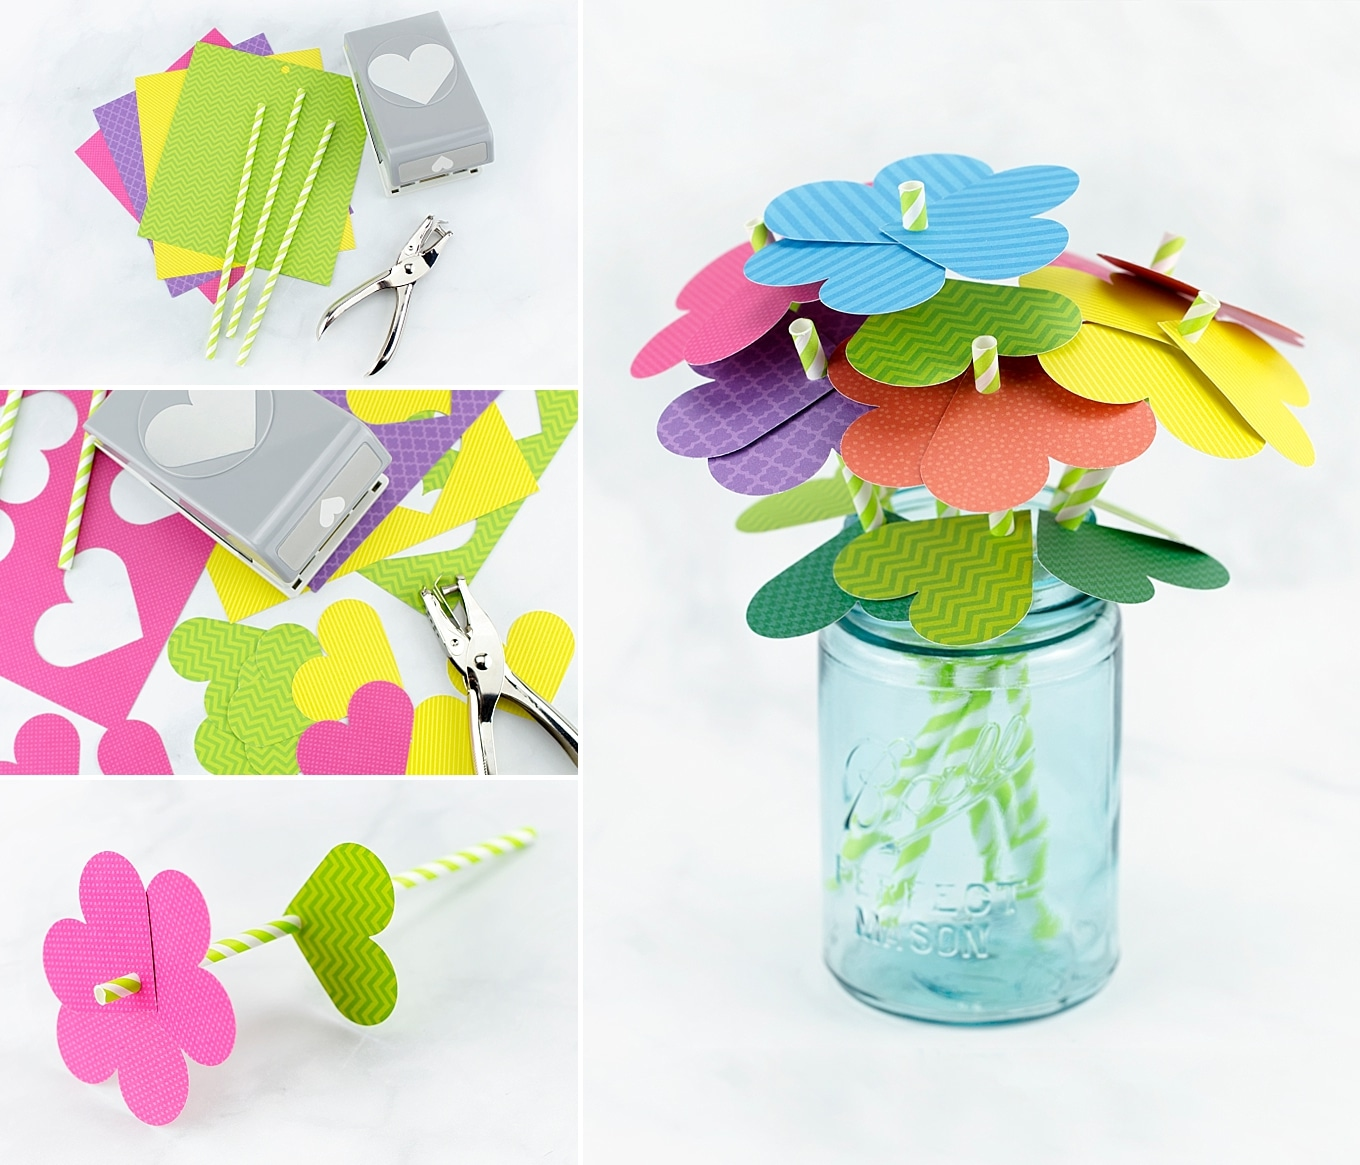 How to Make Colorful Paper Heart Flowers